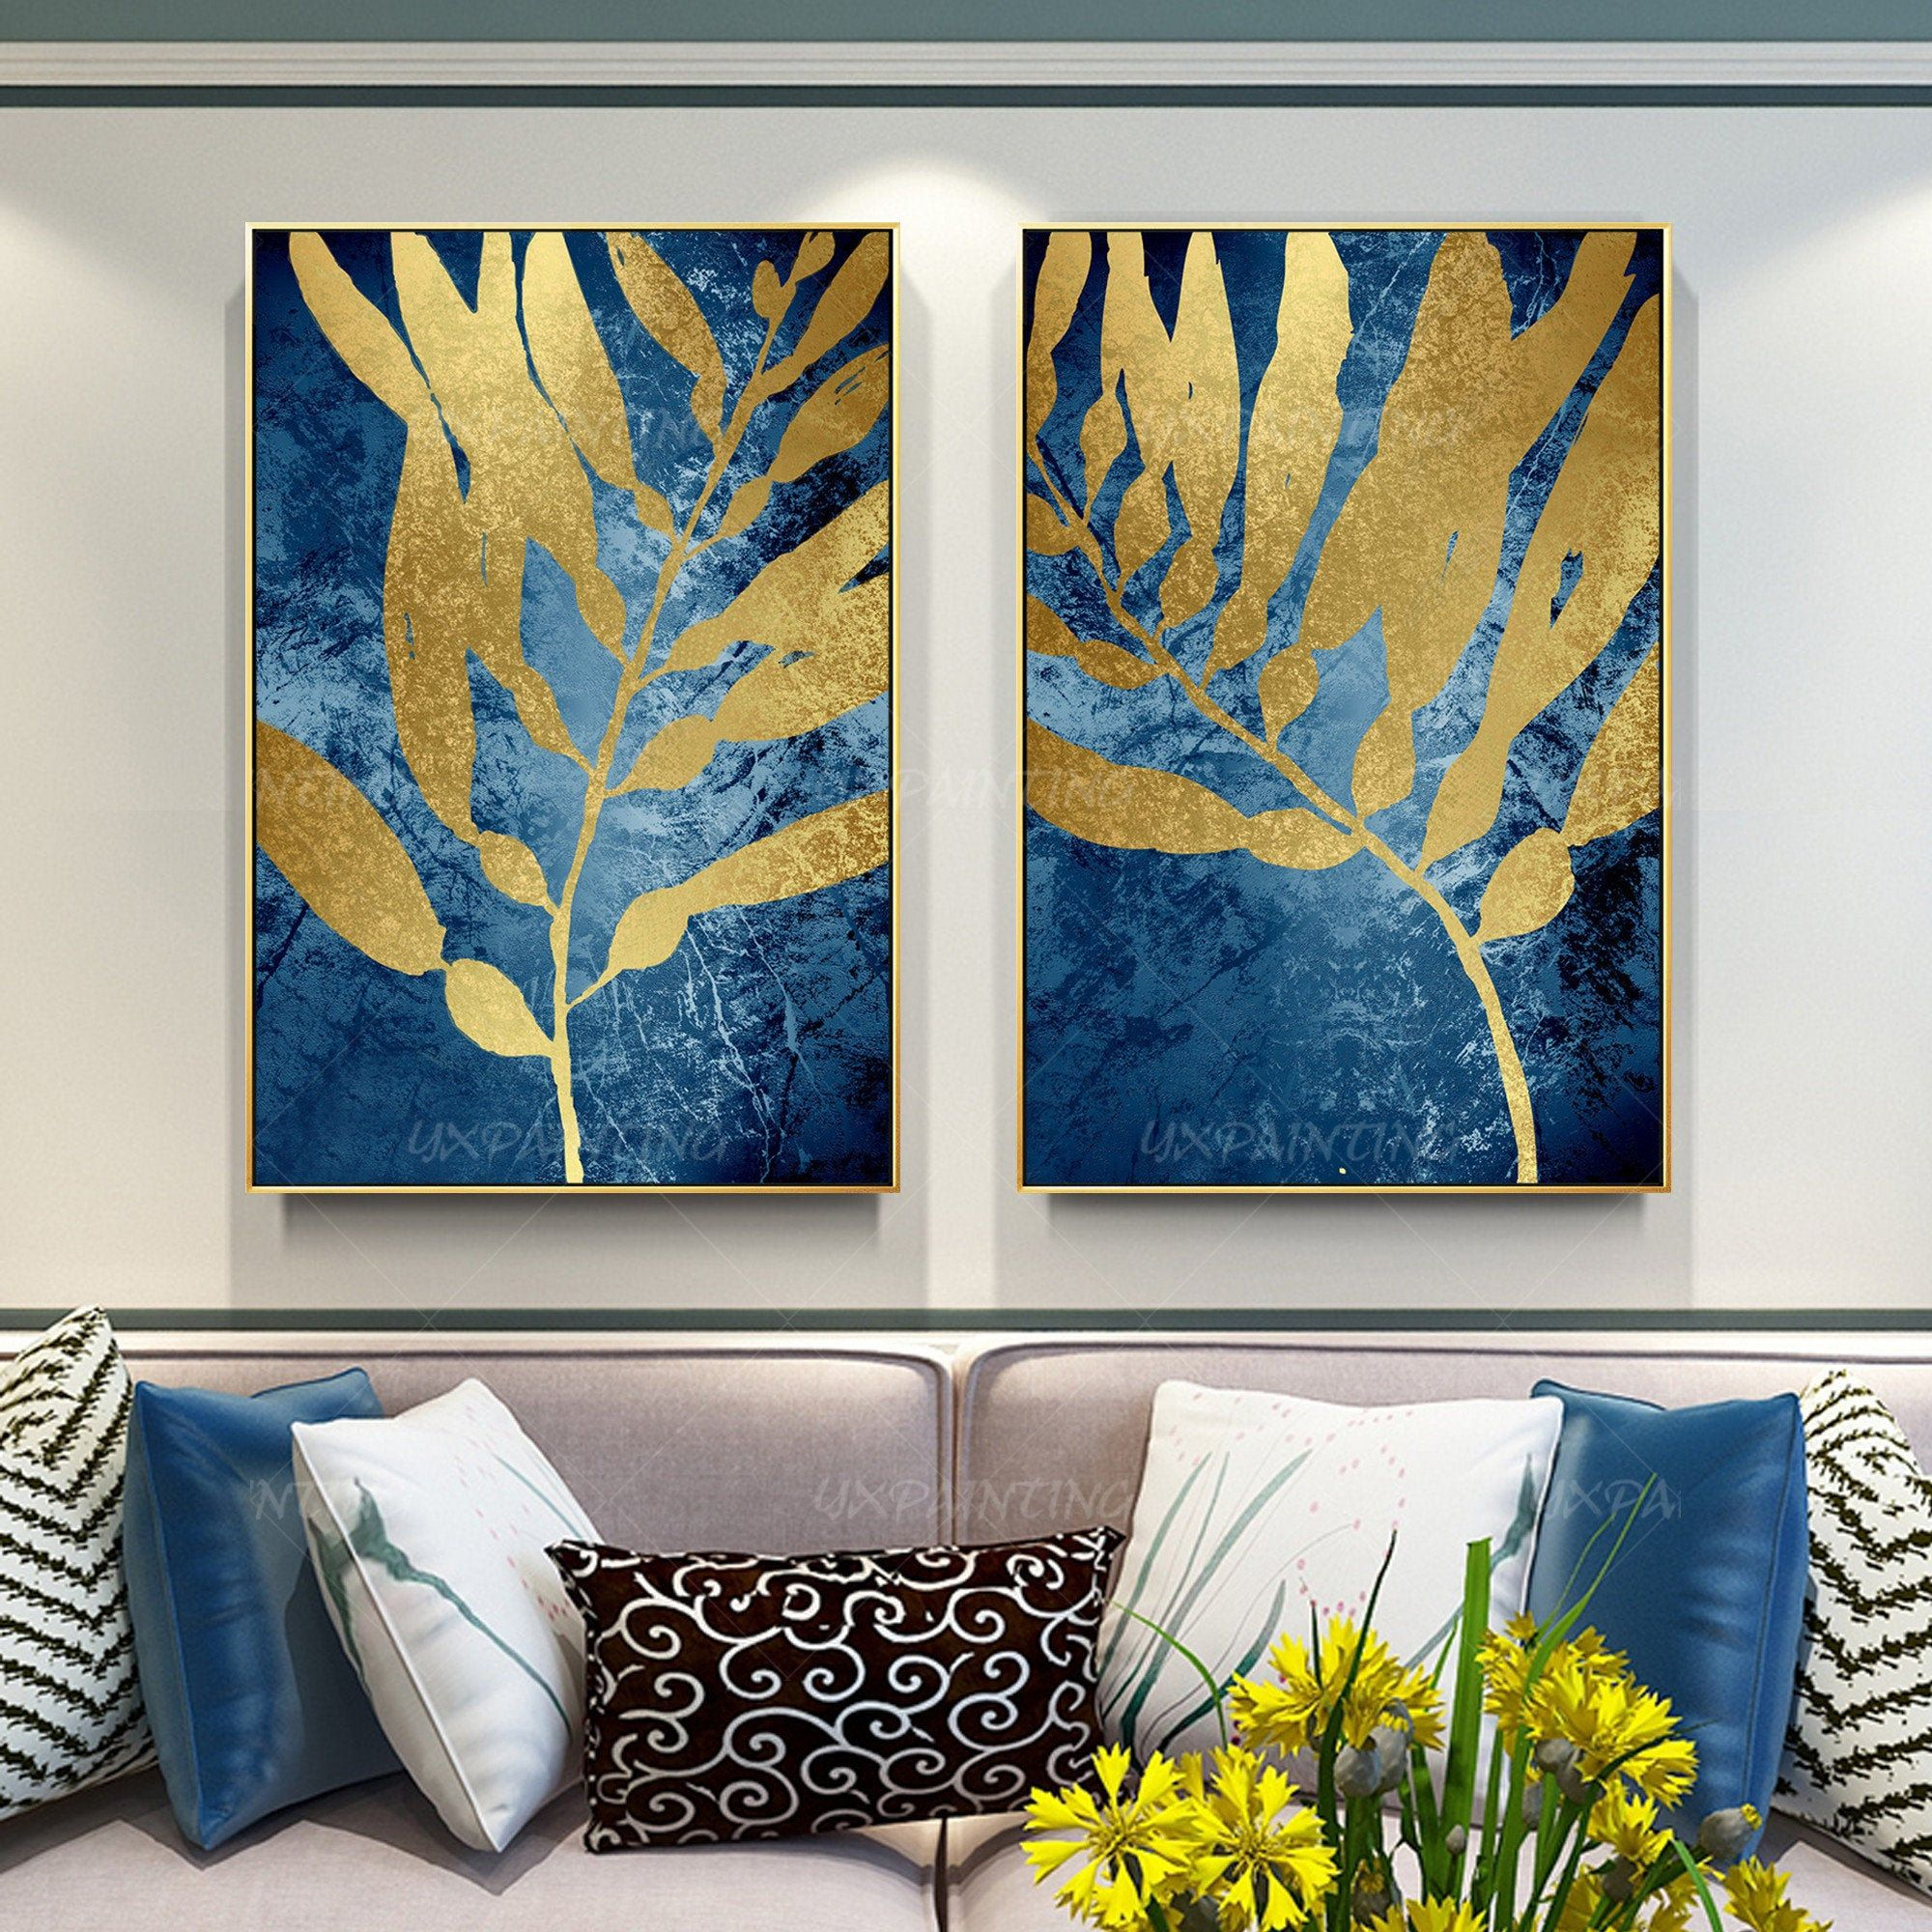 Gold Leaf Set Of 2 Wall Art Navy Blue Abstract Wall Art Abstract Paintings On Canvas Original Art 2 Piece Wall Art Framed Painting Blue Abstract Wall Art Abstract Wall Art